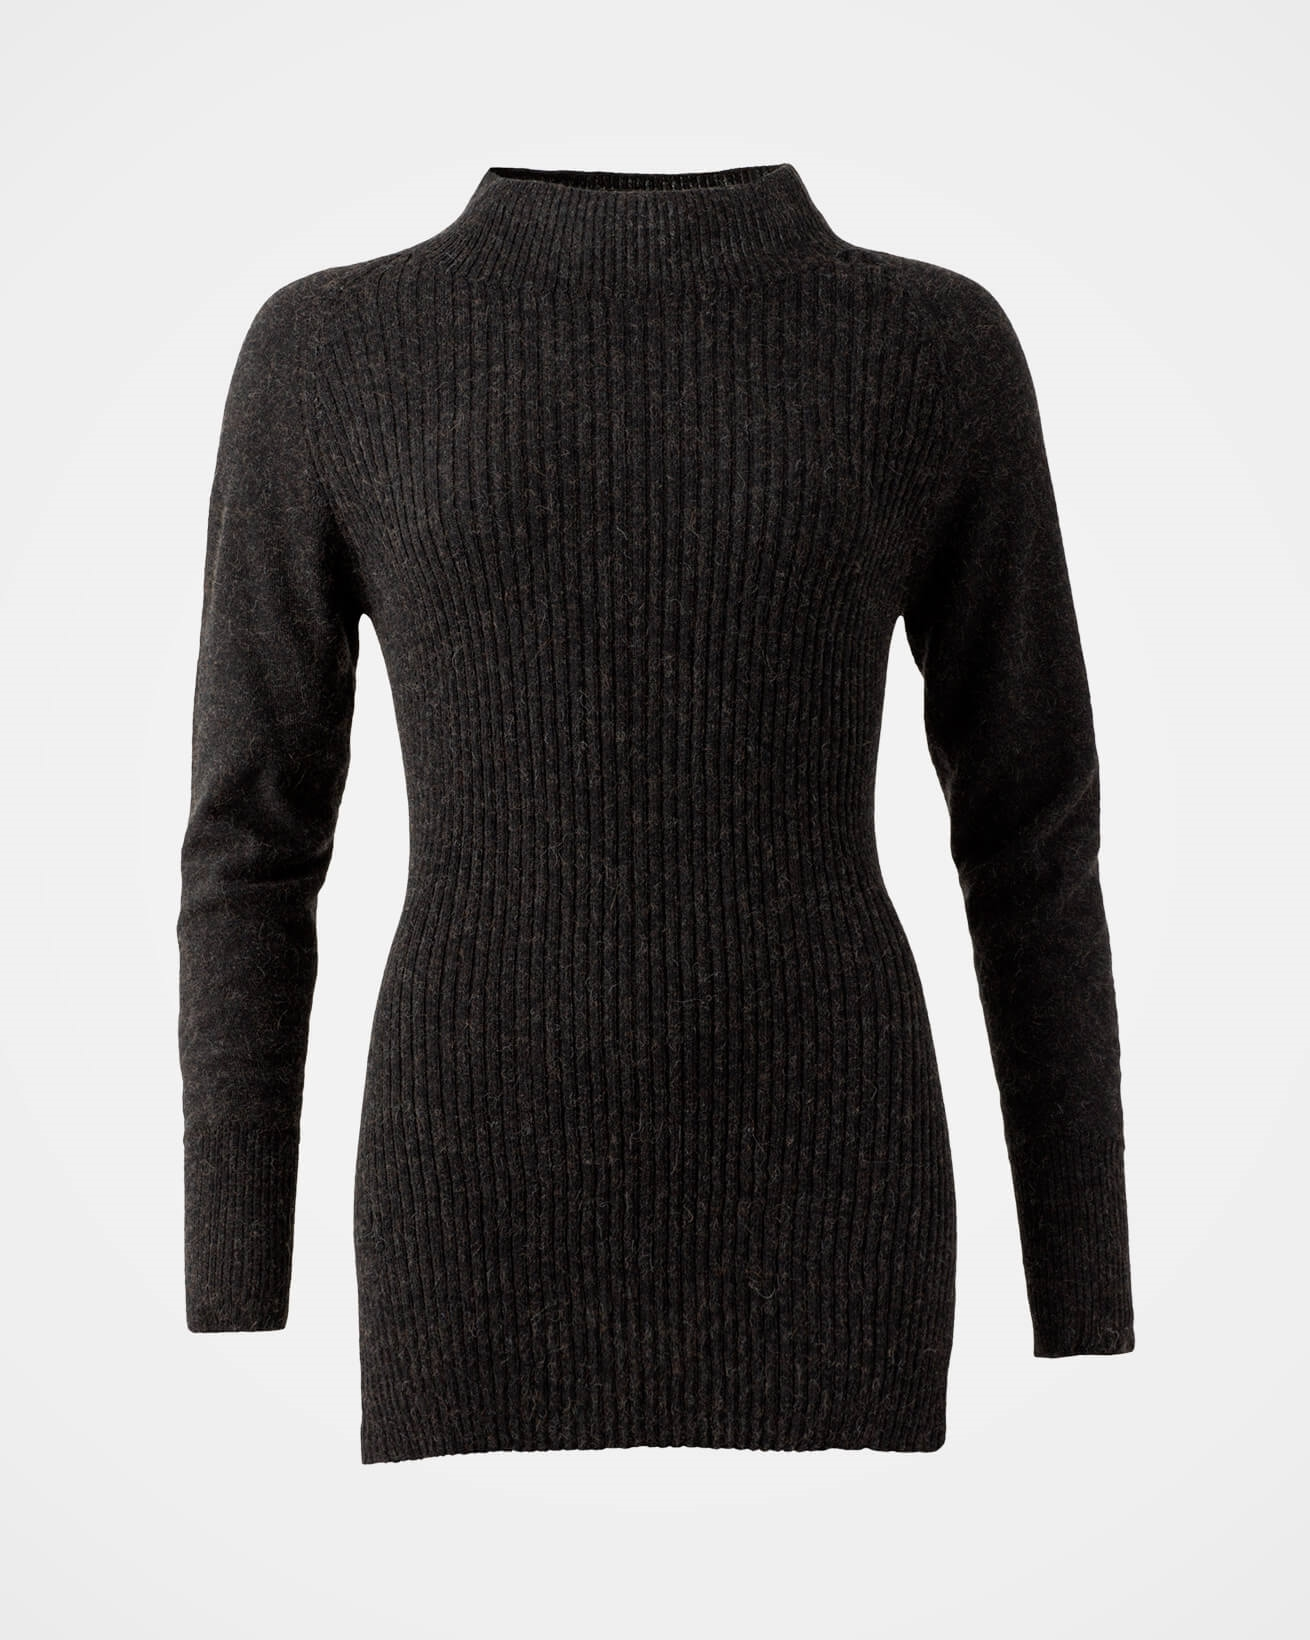 7593_ribbed-tunic_charcoal_front_web.jpg